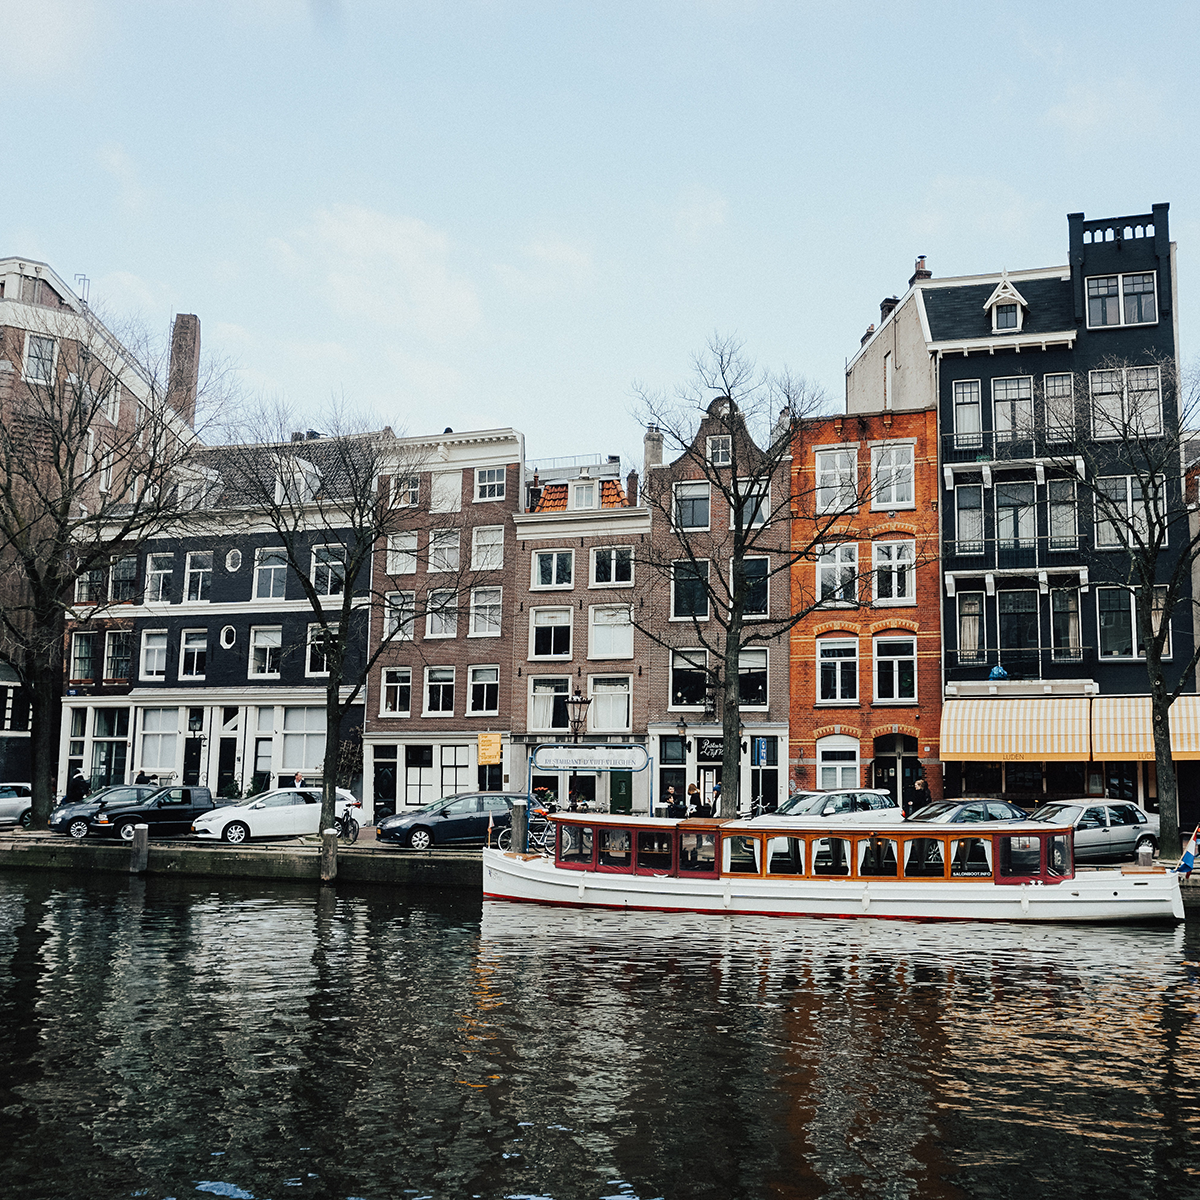 Amsterdam is one of our top cities to explore after lockdown